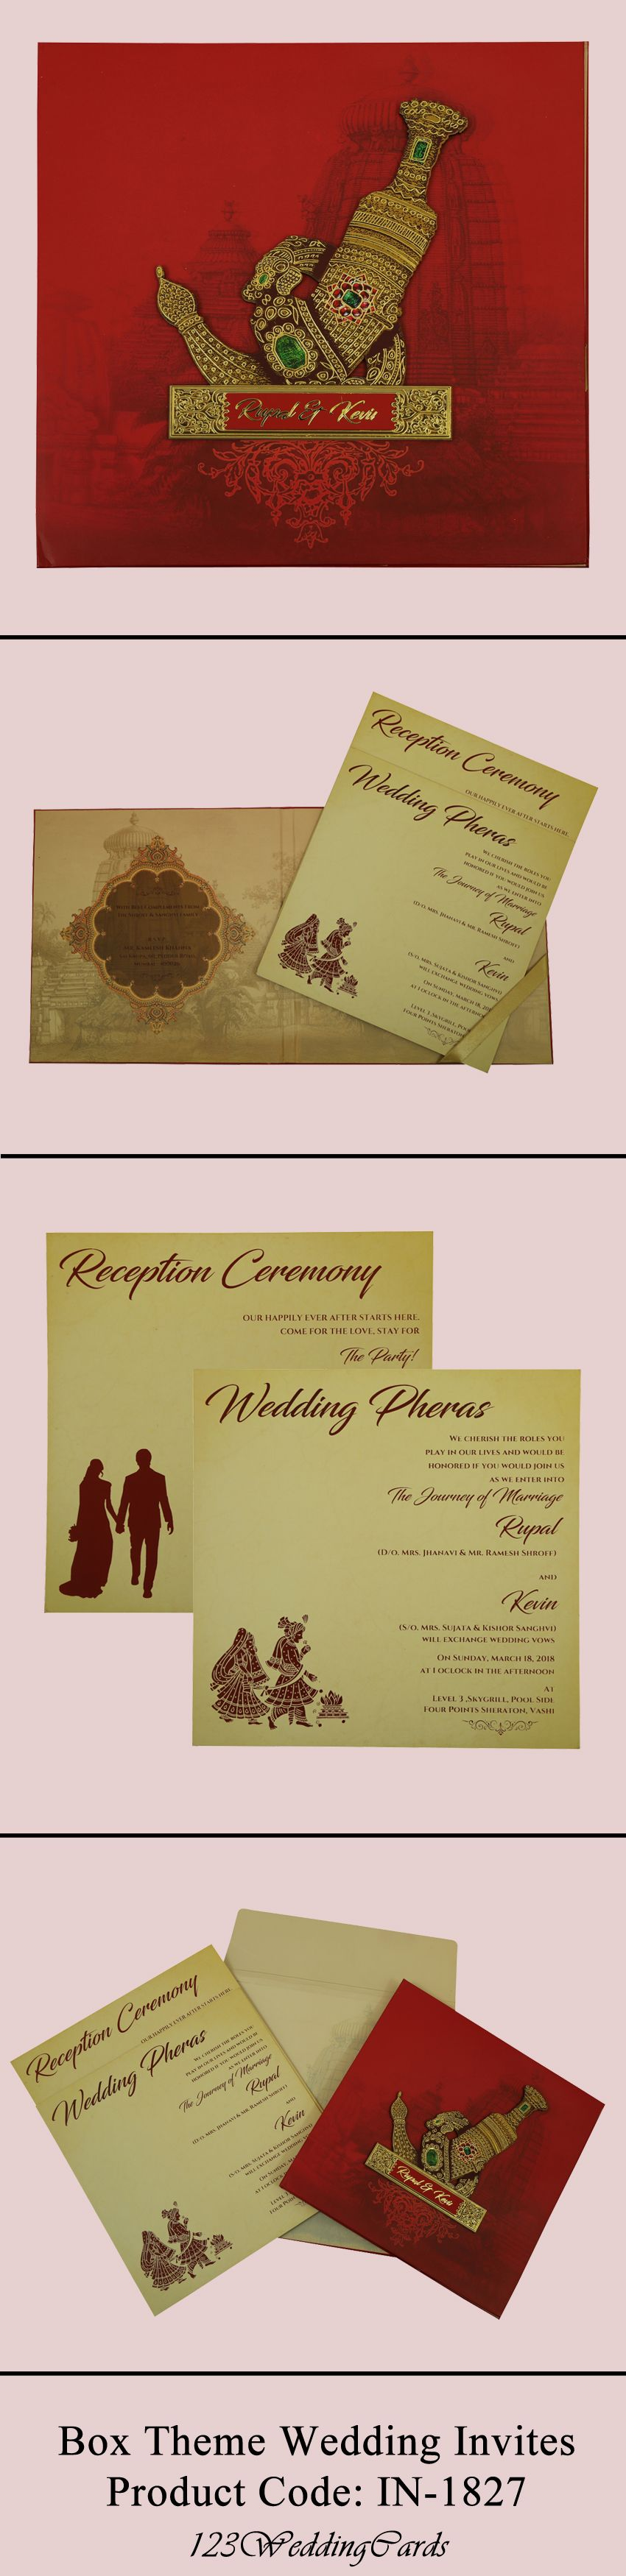 Matte Paper Box Theme Wedding Invitation Made With Offset Printing Method From 123weddi Box Wedding Invitations Unique Wedding Cards Indian Wedding Invitations